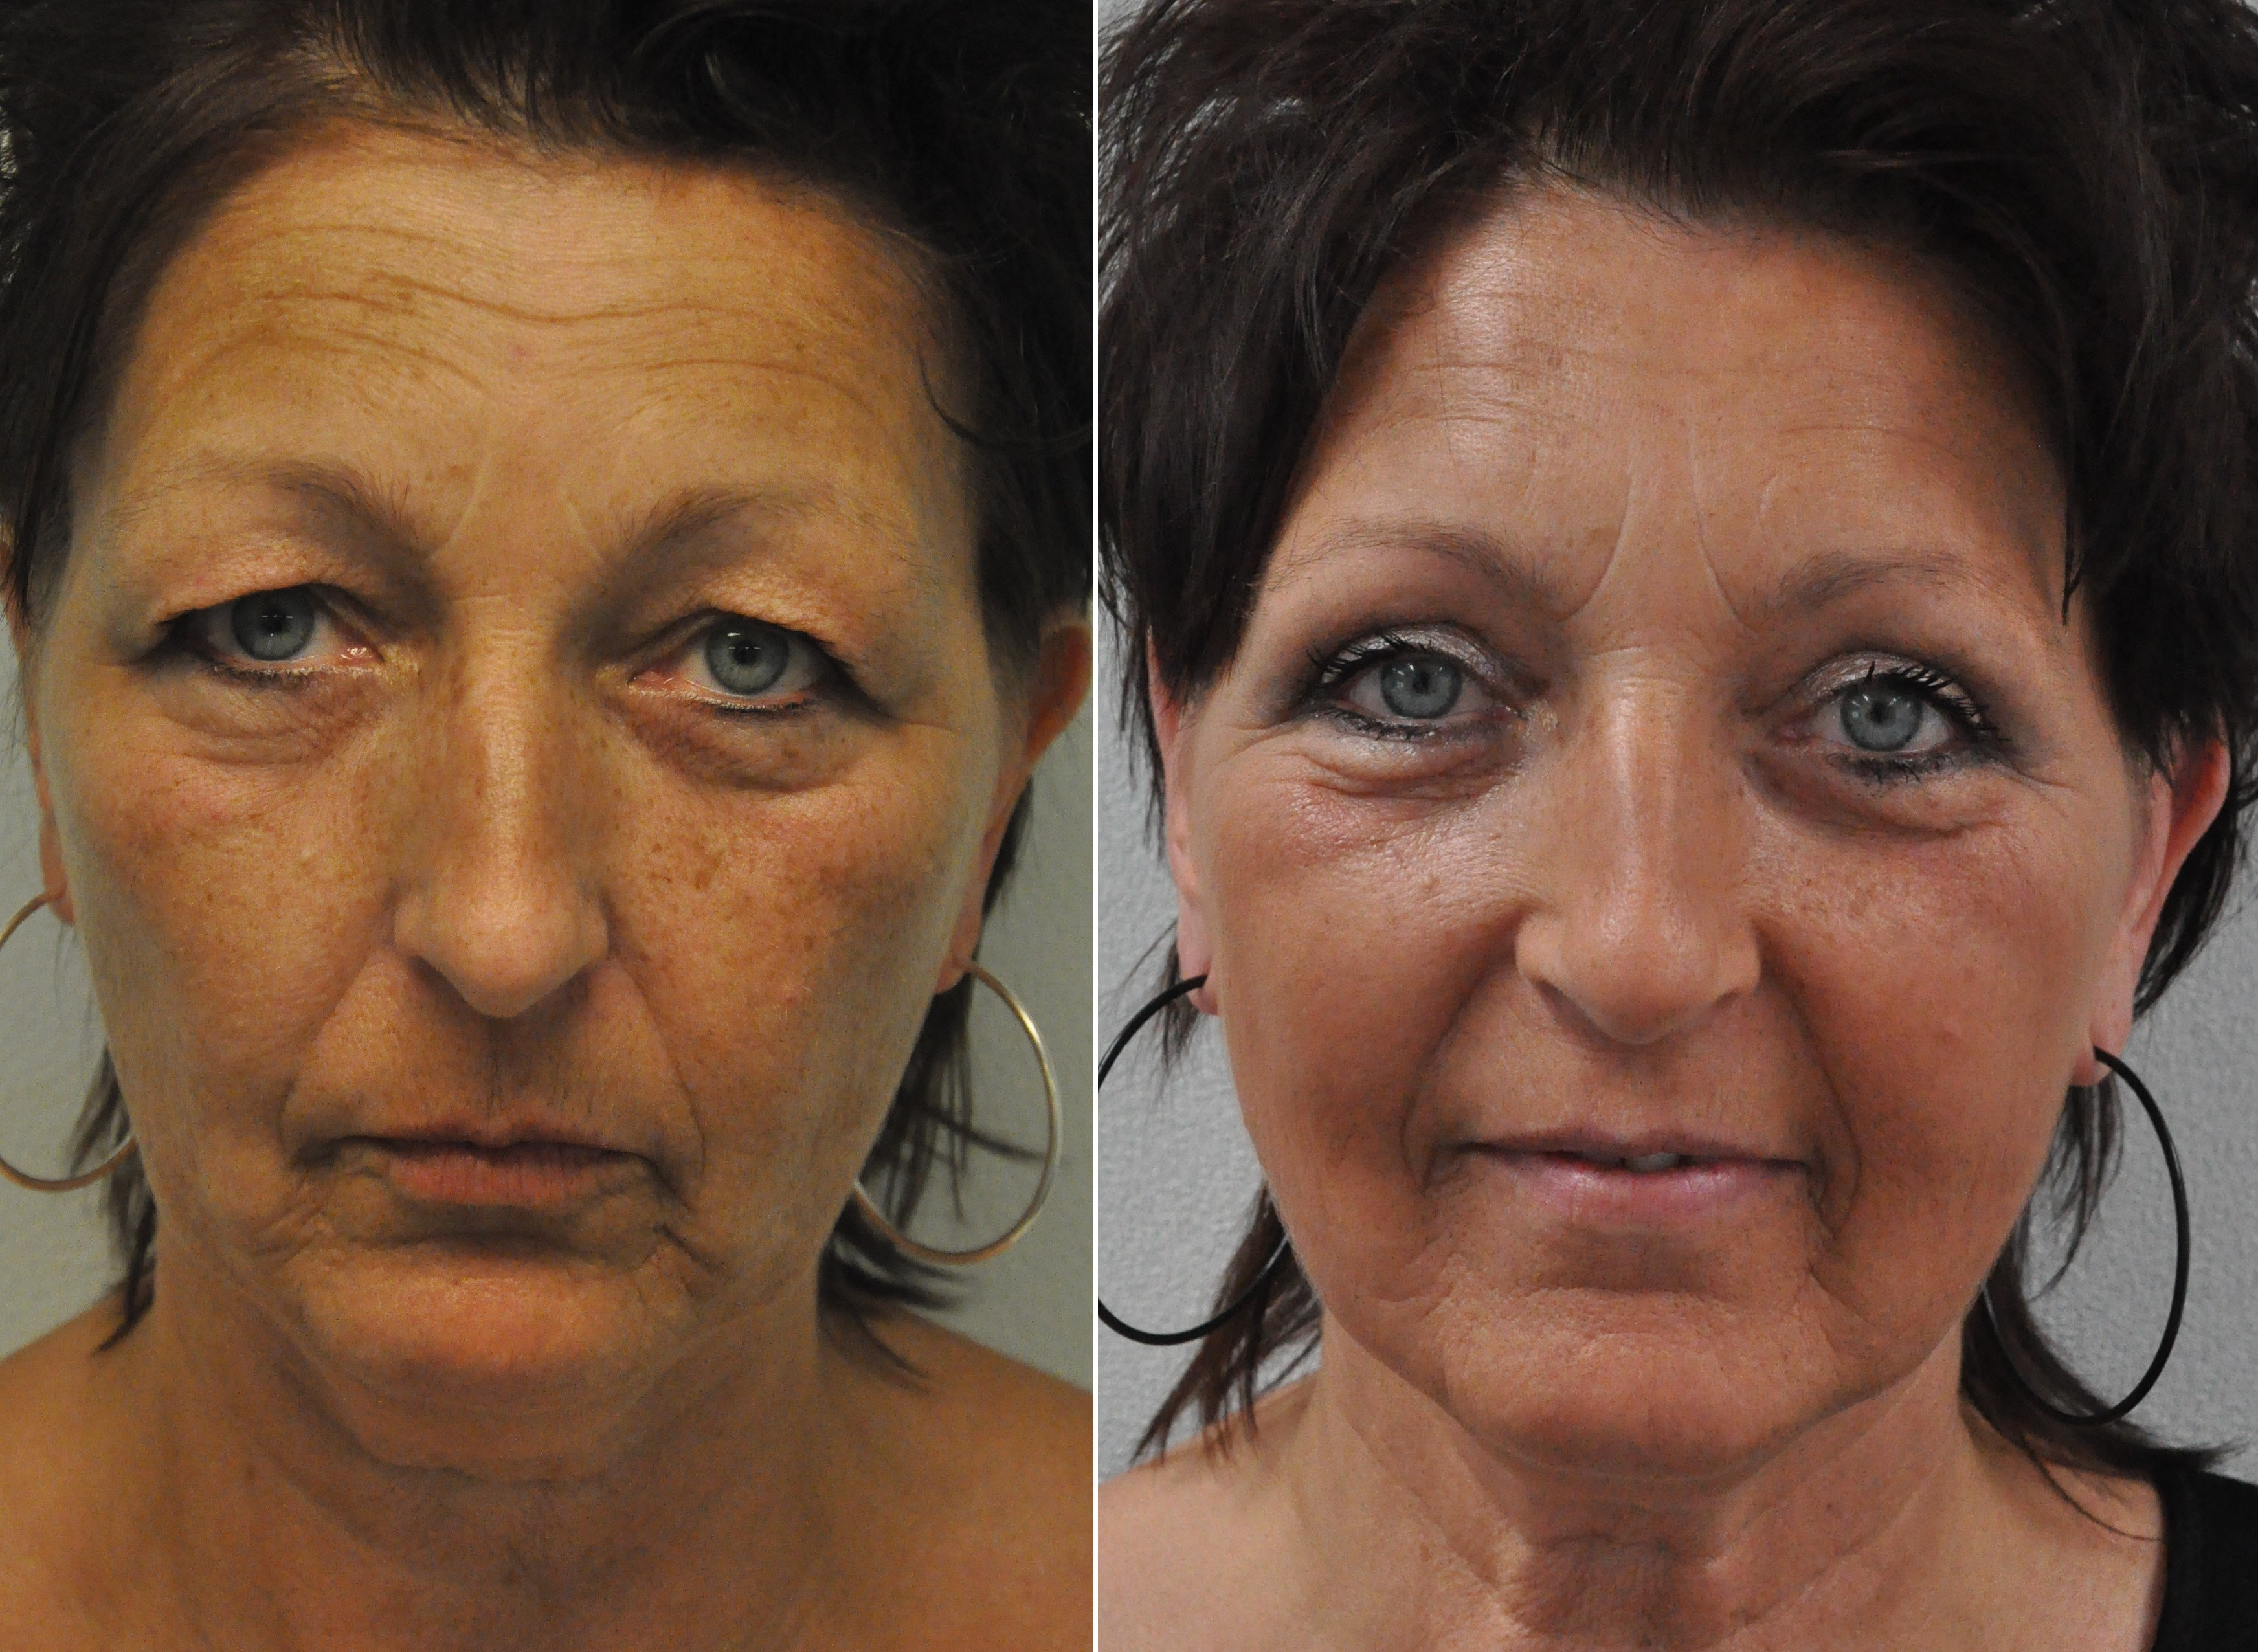 ooglidcor 2 - Results Upper eyelid correction